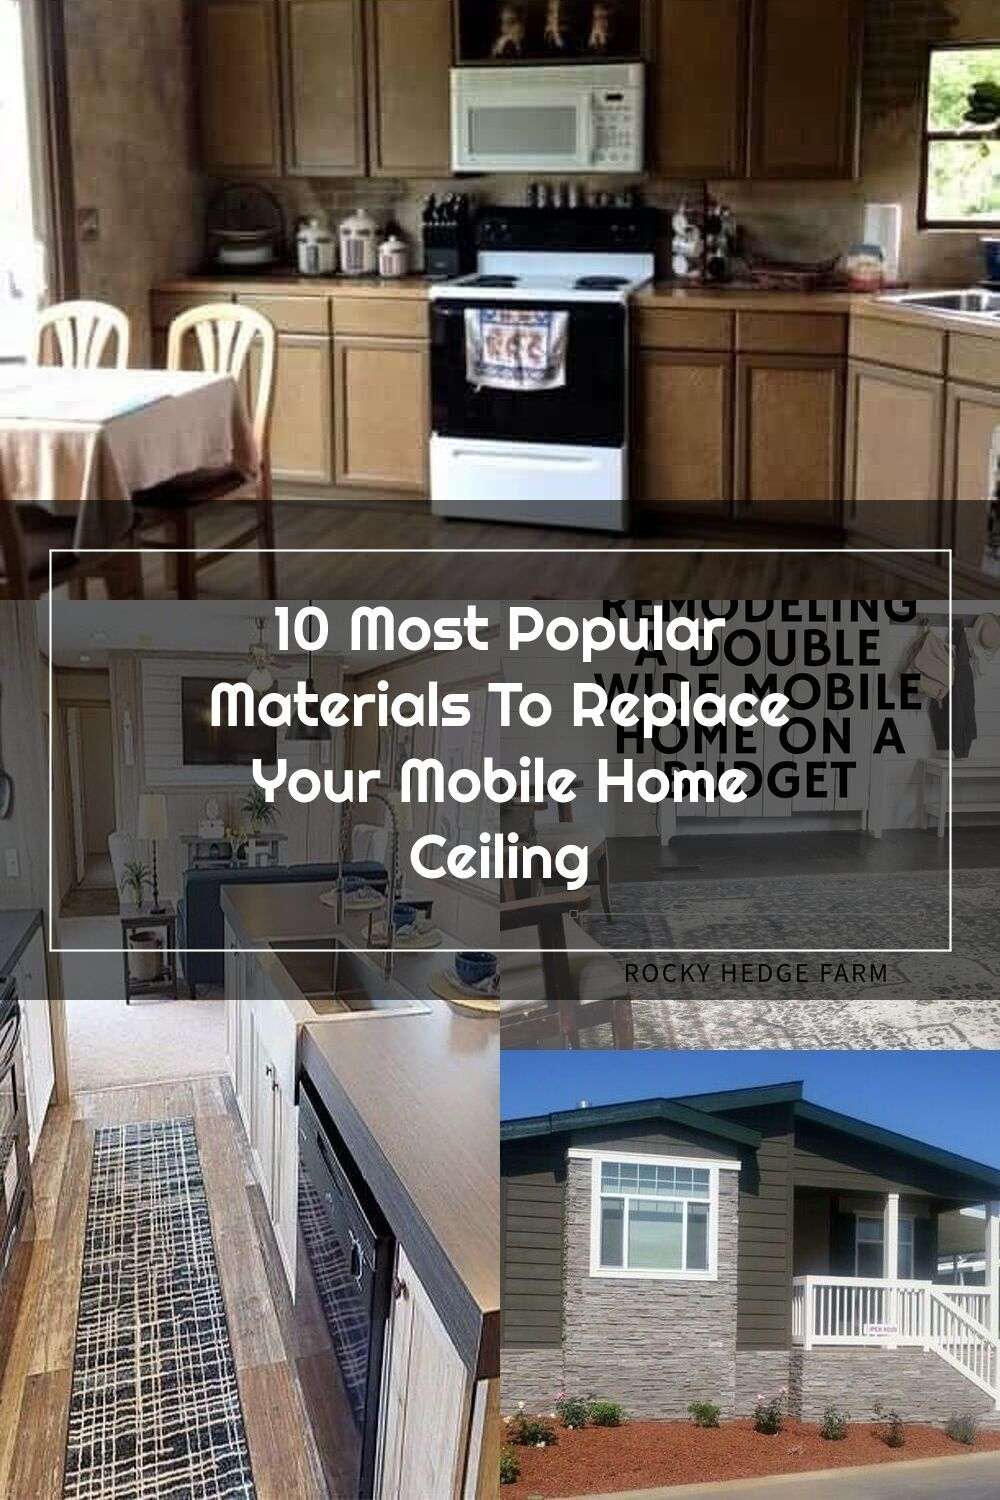 Our 10 Favorite Materials To Replace Your Mobile Home Ceiling In 2020 Home Ceiling Mobile Home Home